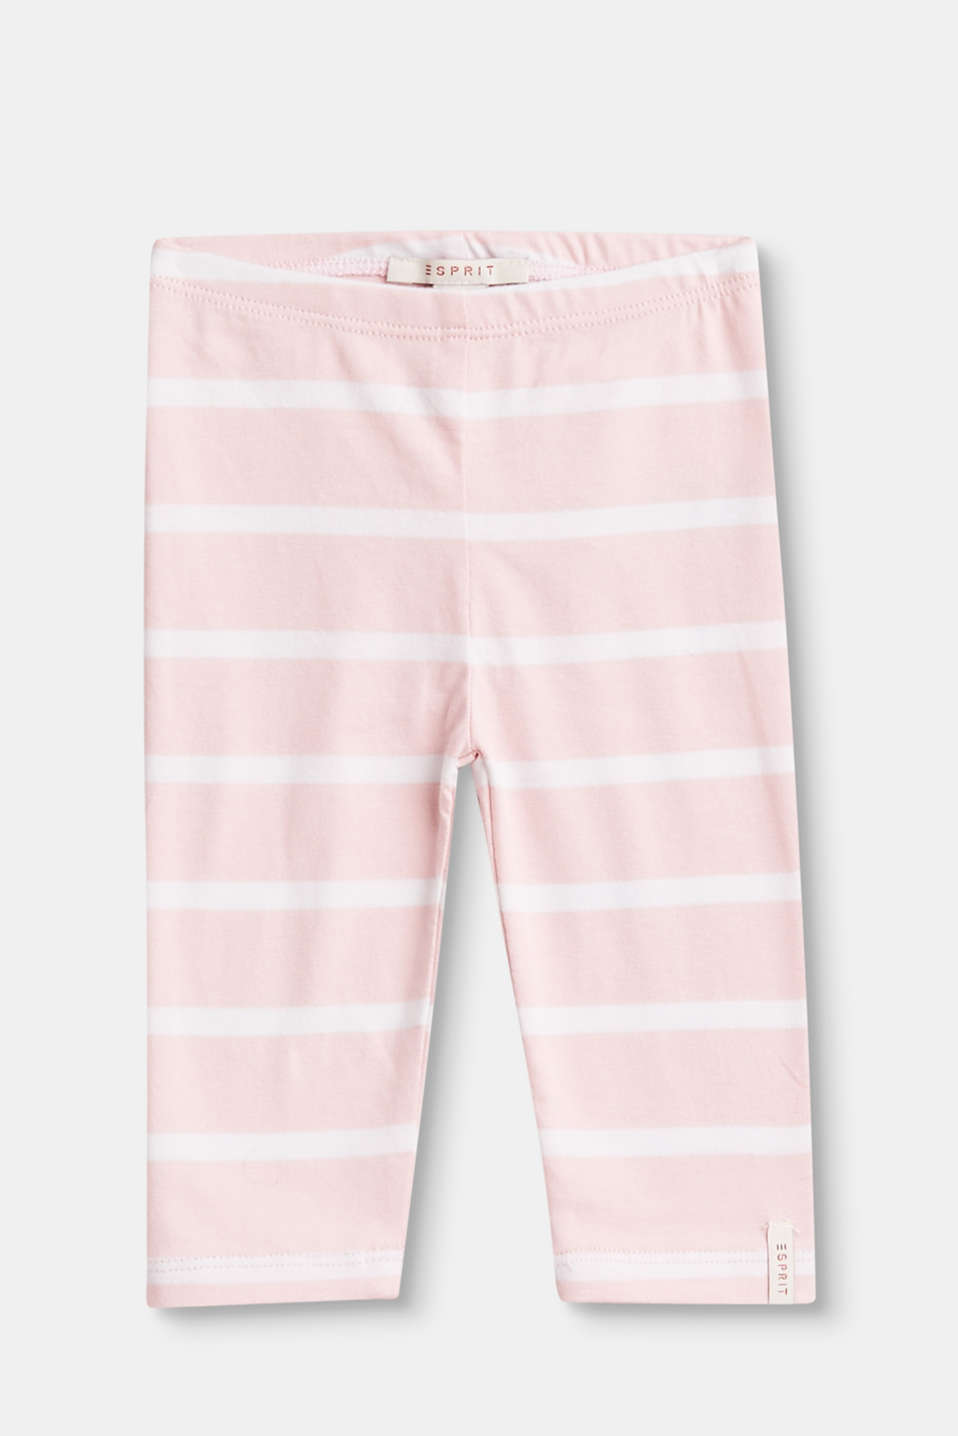 These leggings made of soft cotton jersey with all-over stripes and a percentage of stretch are sweet and comfy.